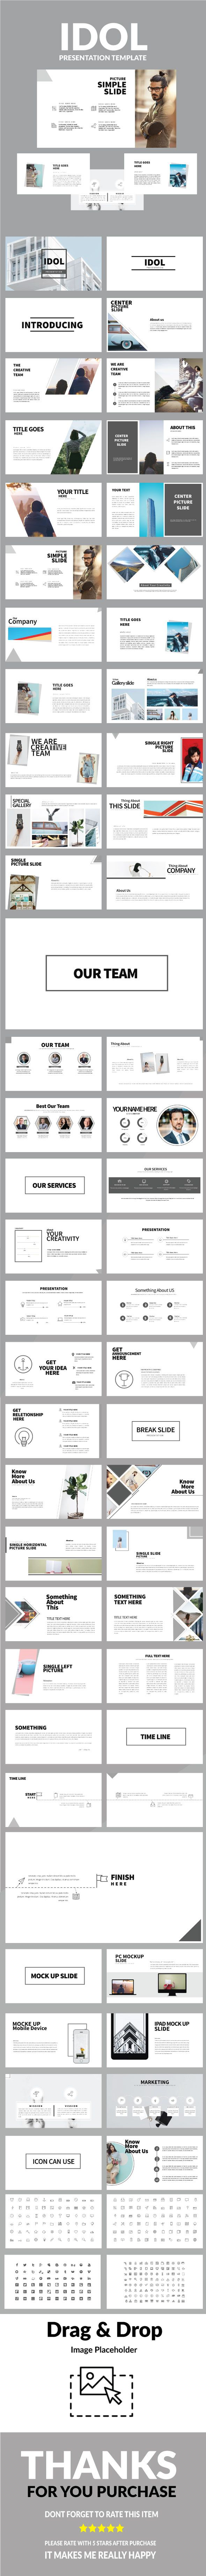 Idol Multipurpose Powerpoint (PowerPoint Templates) | Pinterest ...